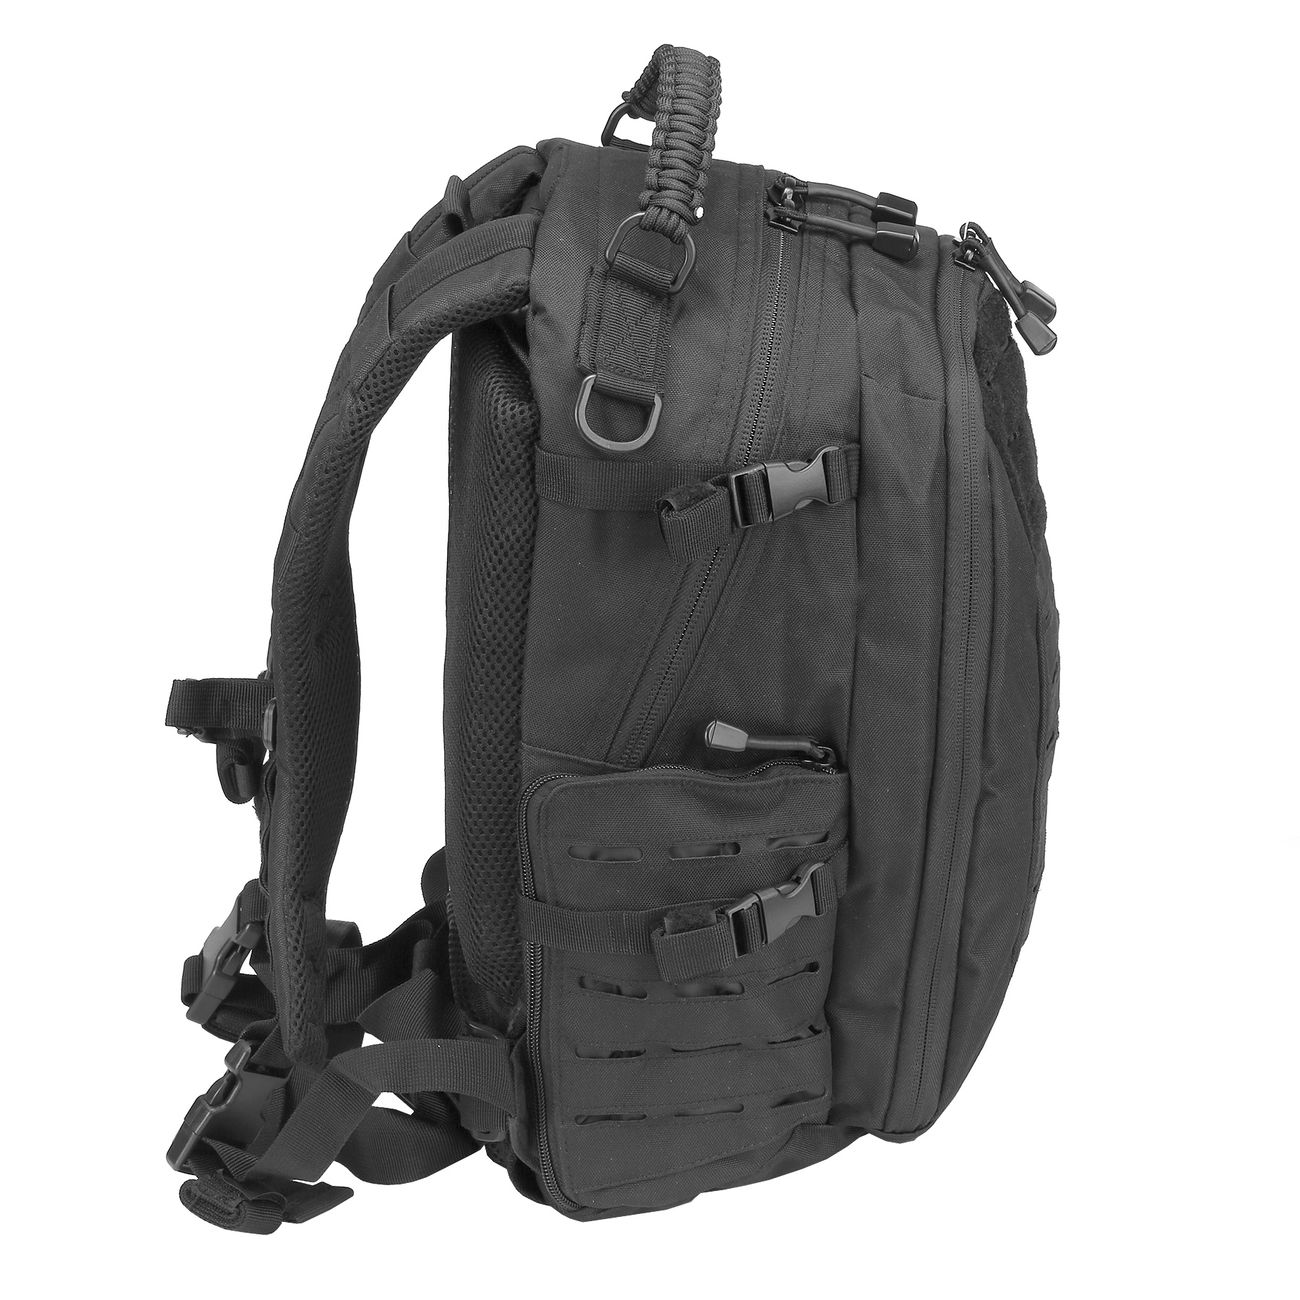 Mil-Tec Rucksack Mission Pack Laser Cut Small schwarz 1